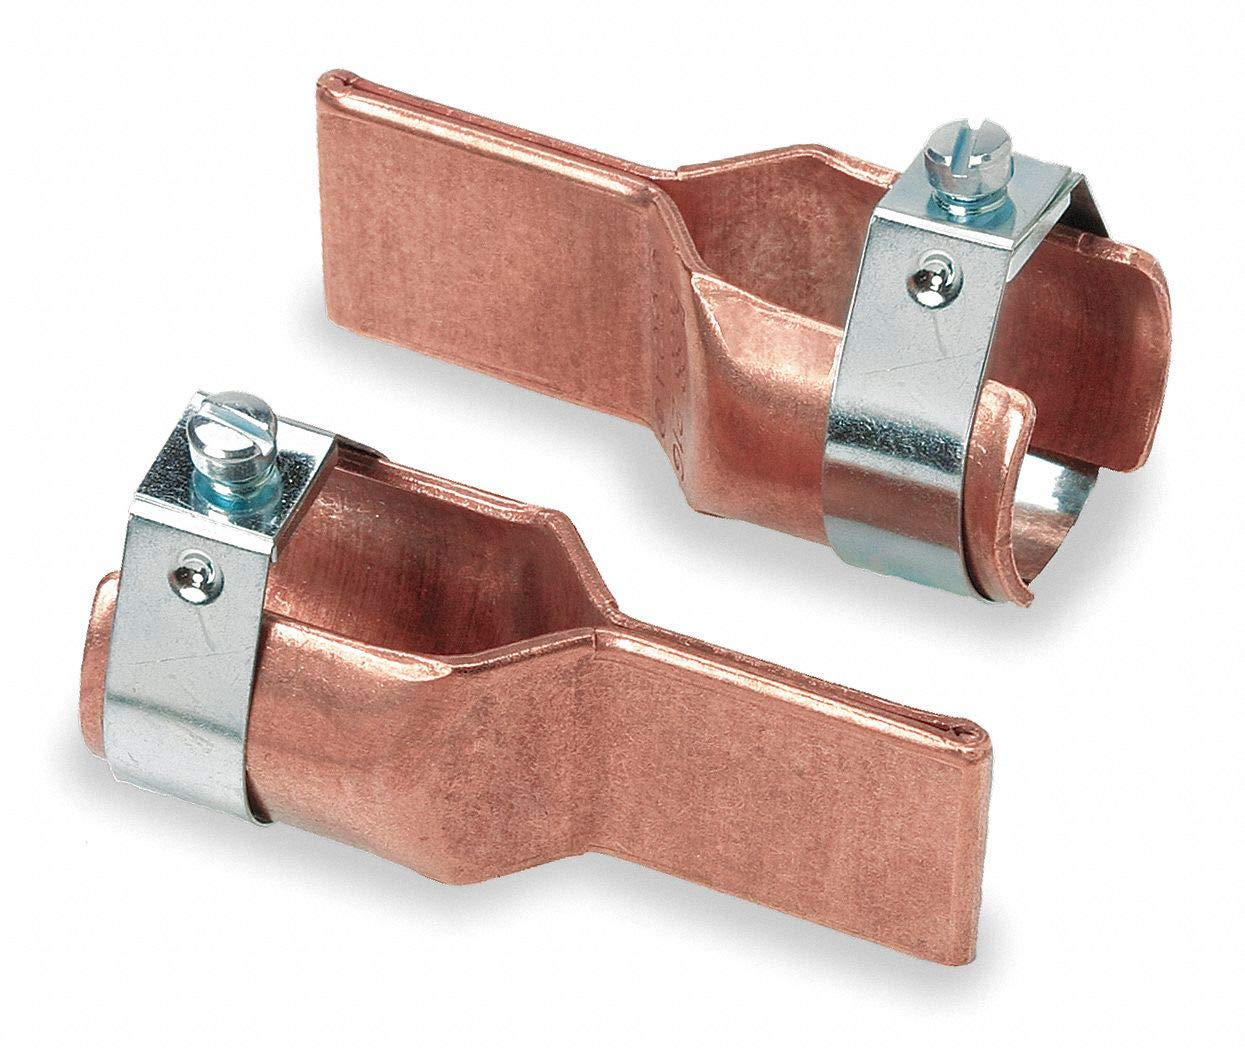 250VAC Nonrejection Fuse Reducer with 35 to 60 Fuse Reducer Amp Range